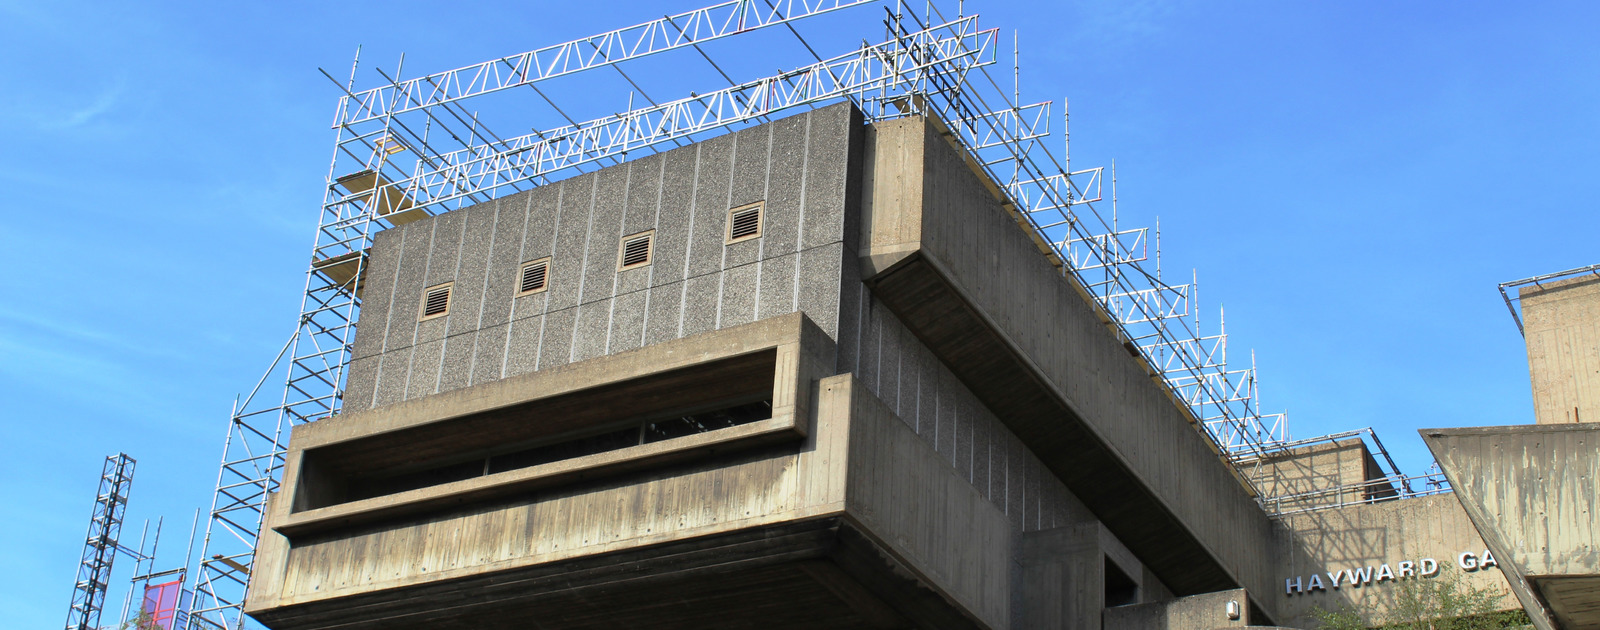 Exterior view of the Hayward Gallery refurbishment at the Southbank Centre